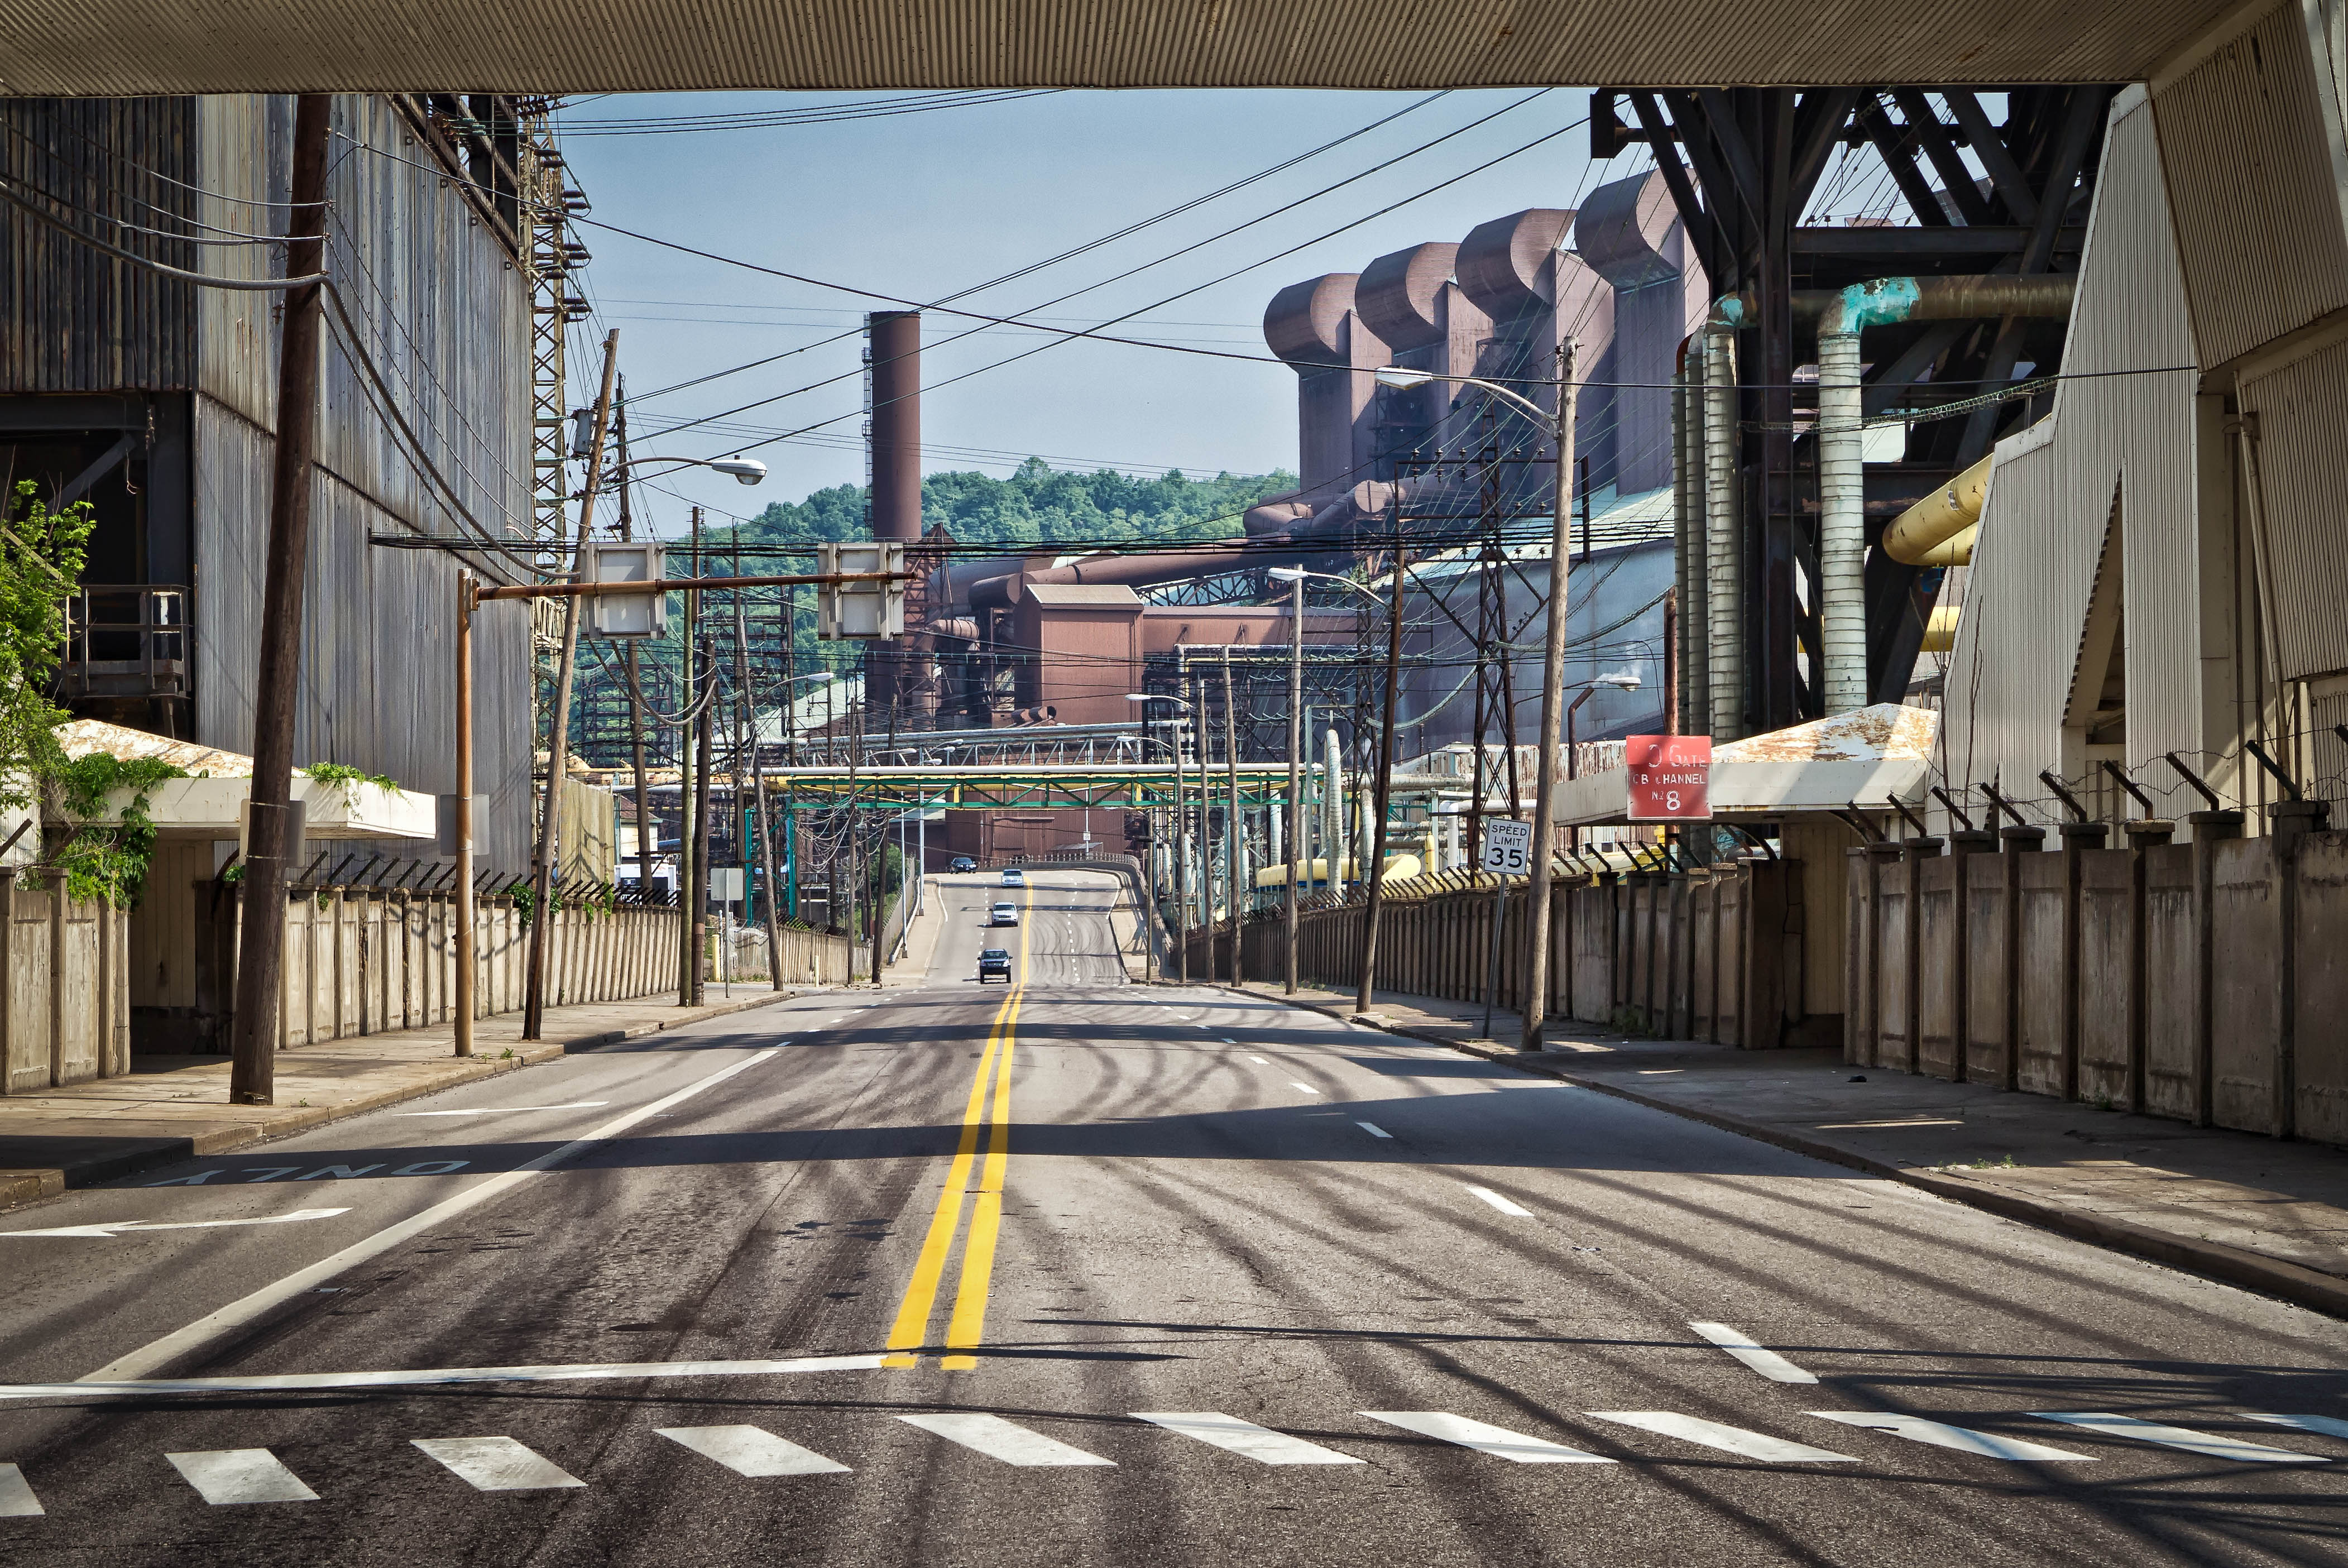 weirton-steel-from-main-street_7337898550_o